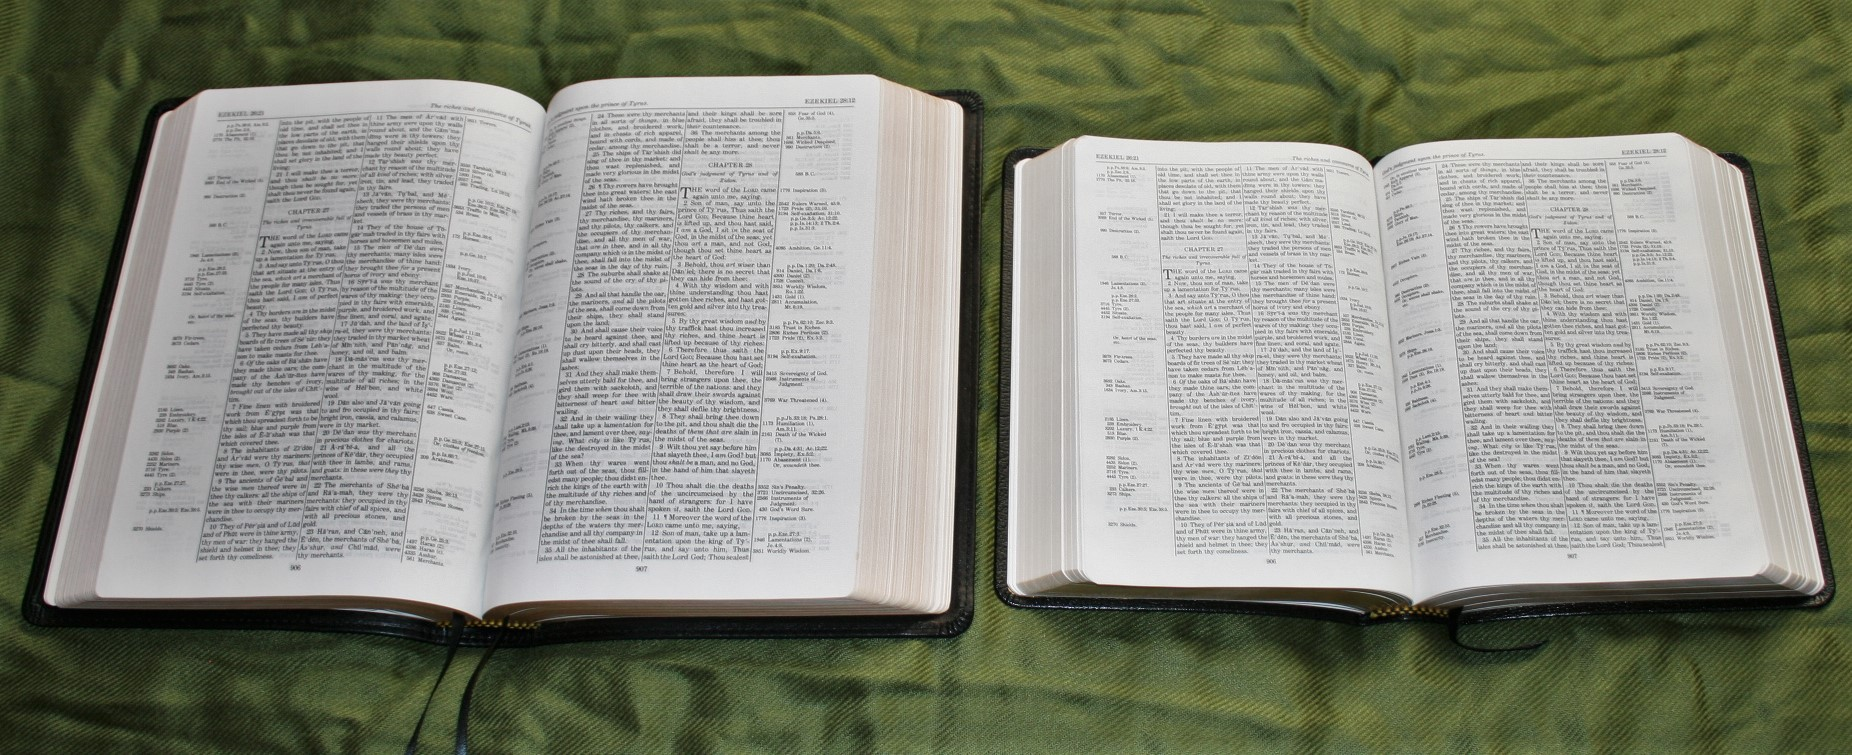 Handy Size Thompson Chain Reference Bible KJV (13)